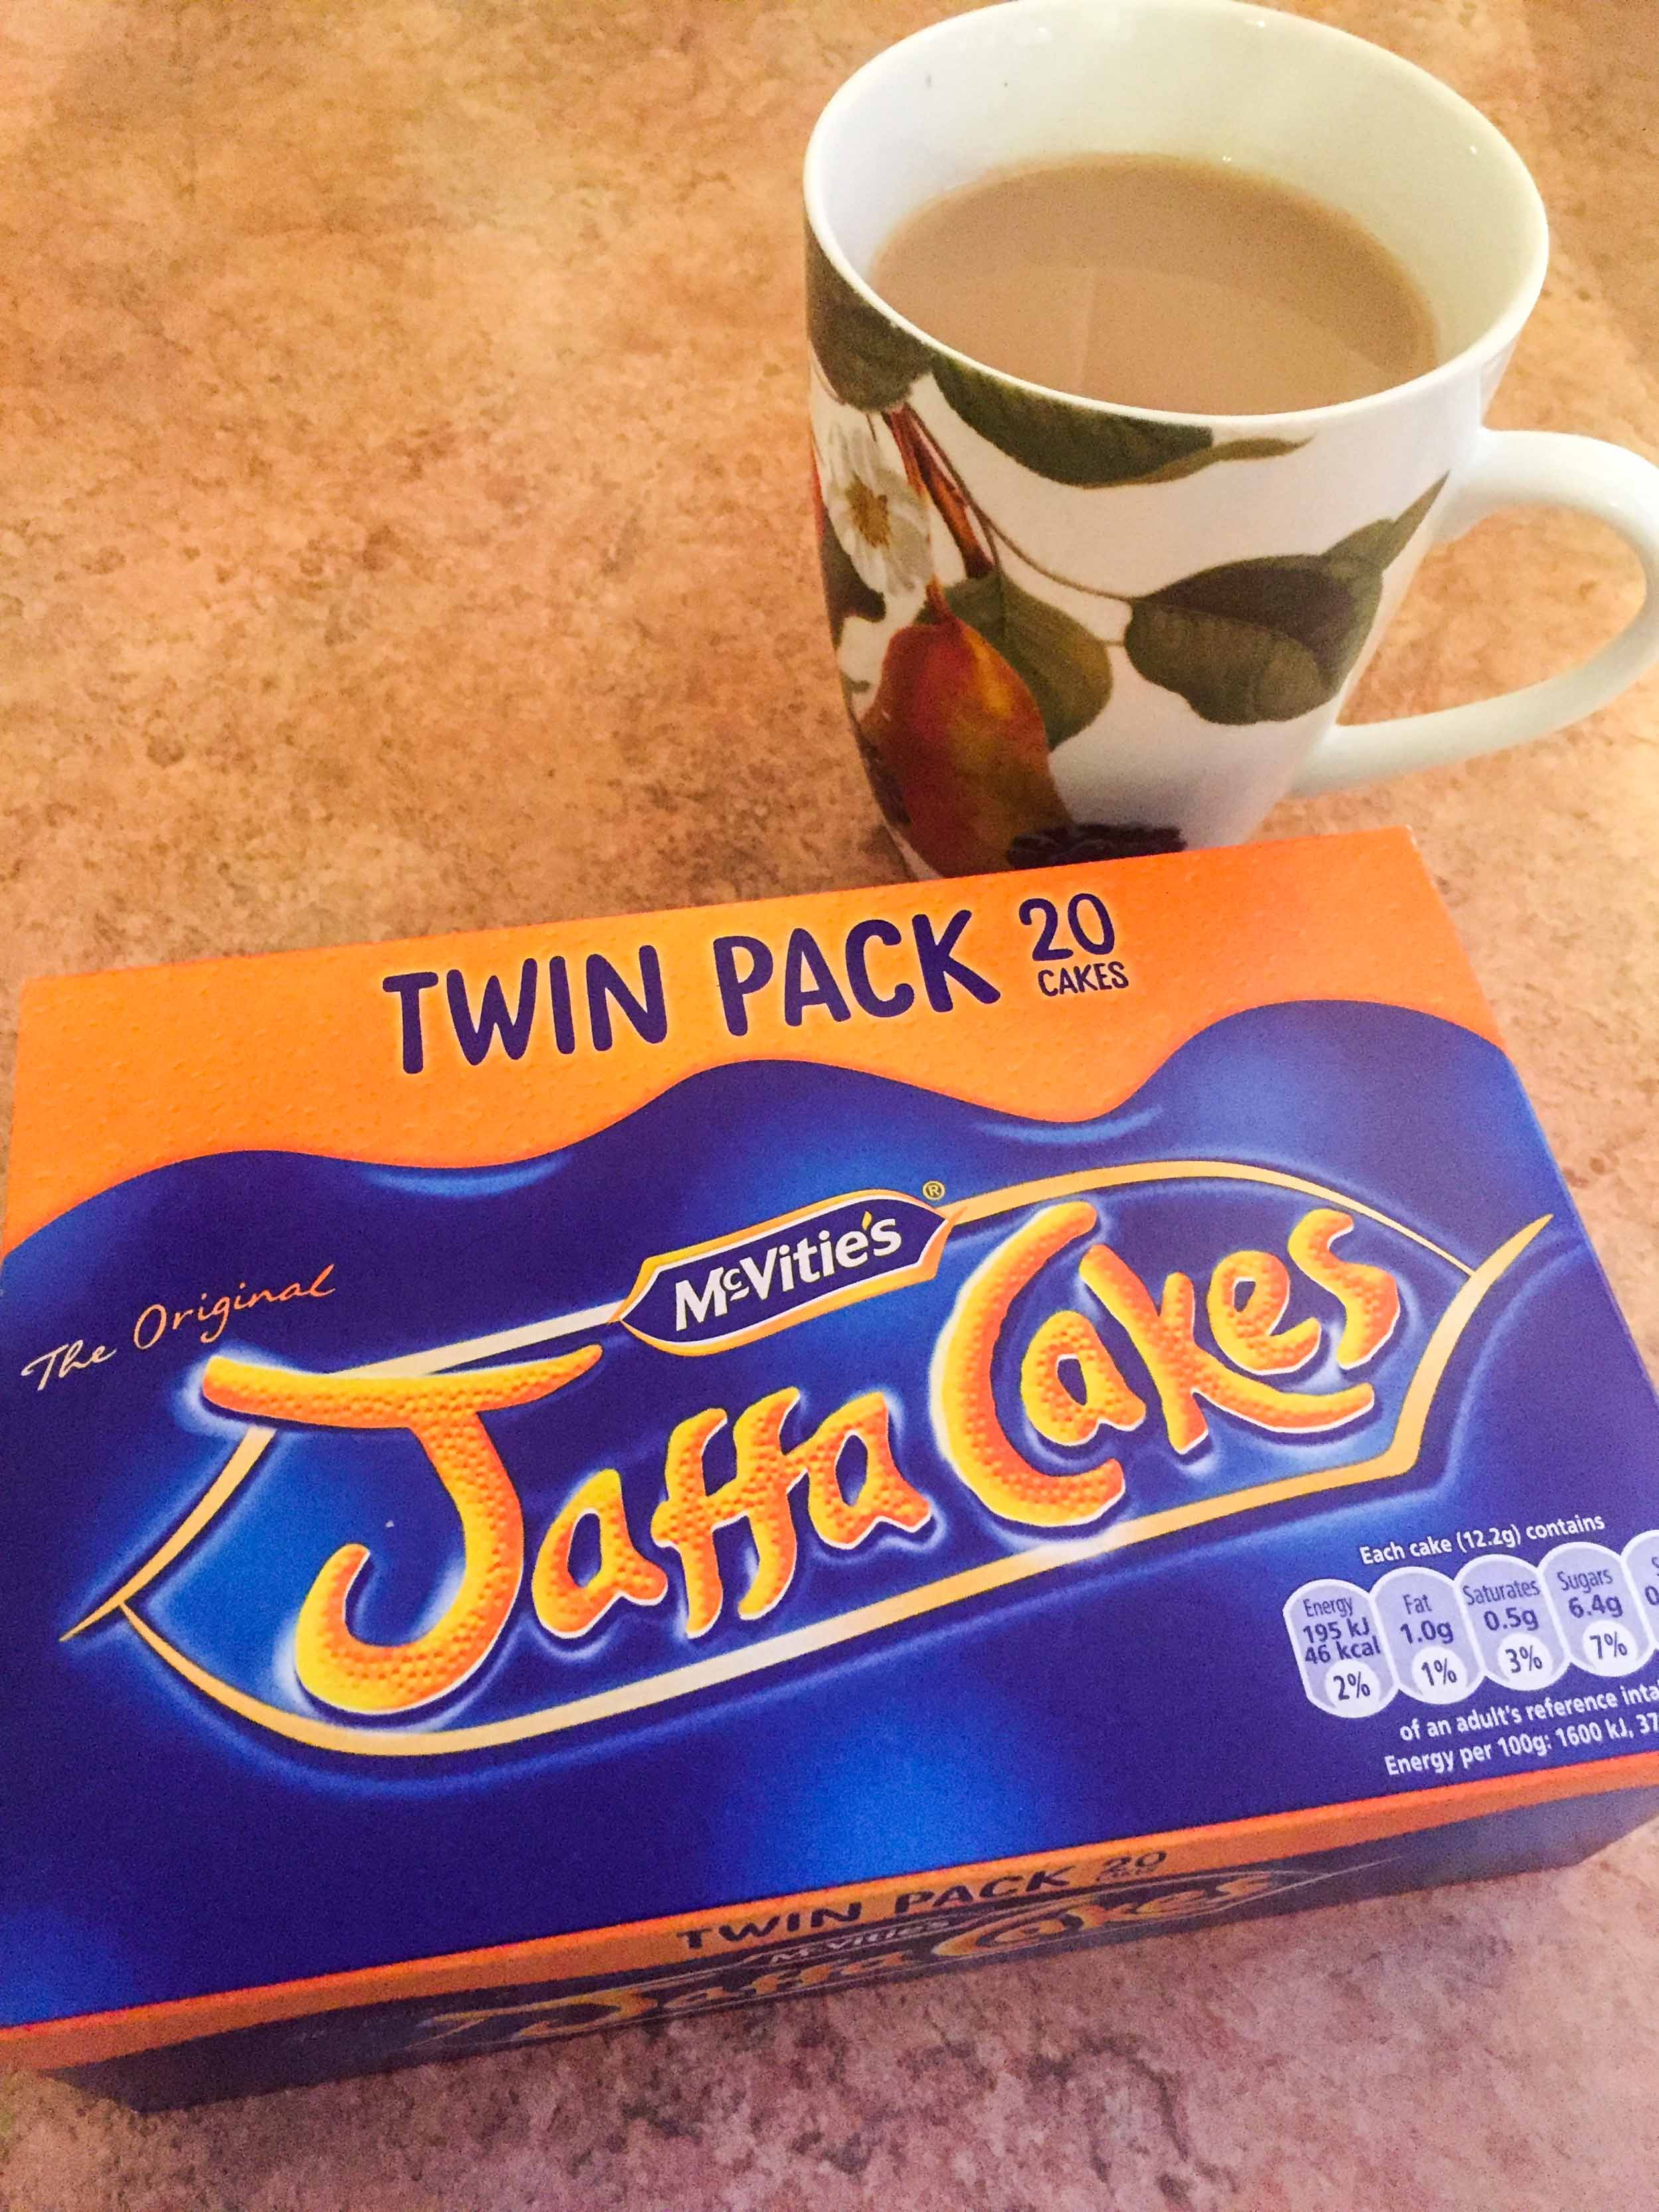 Jaffa Cakes biscuits and a cup of tea - British snacks.